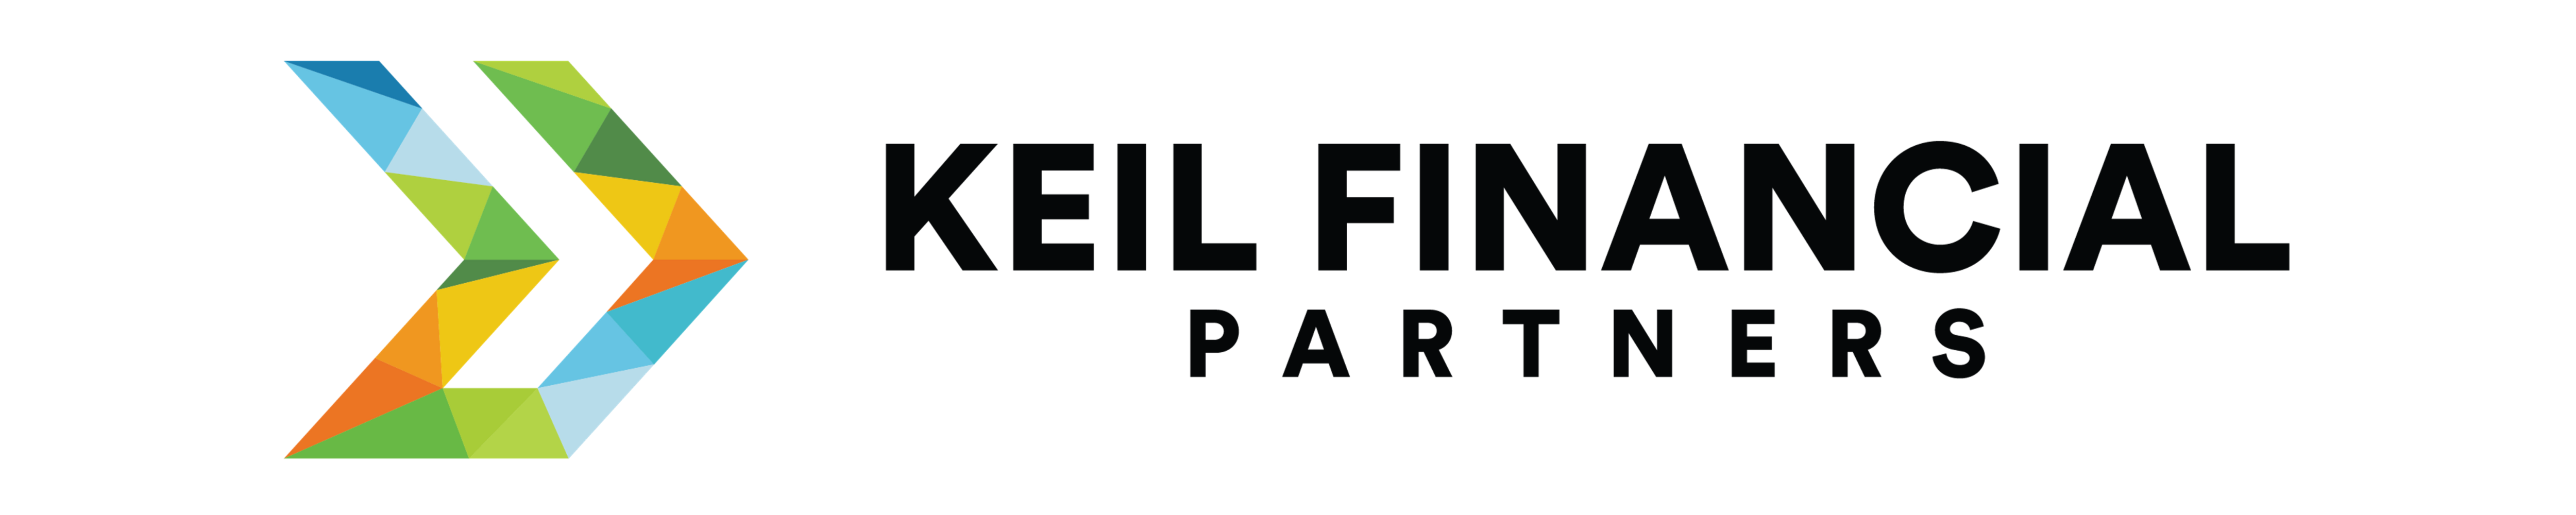 Logo for Keil Financial Partners